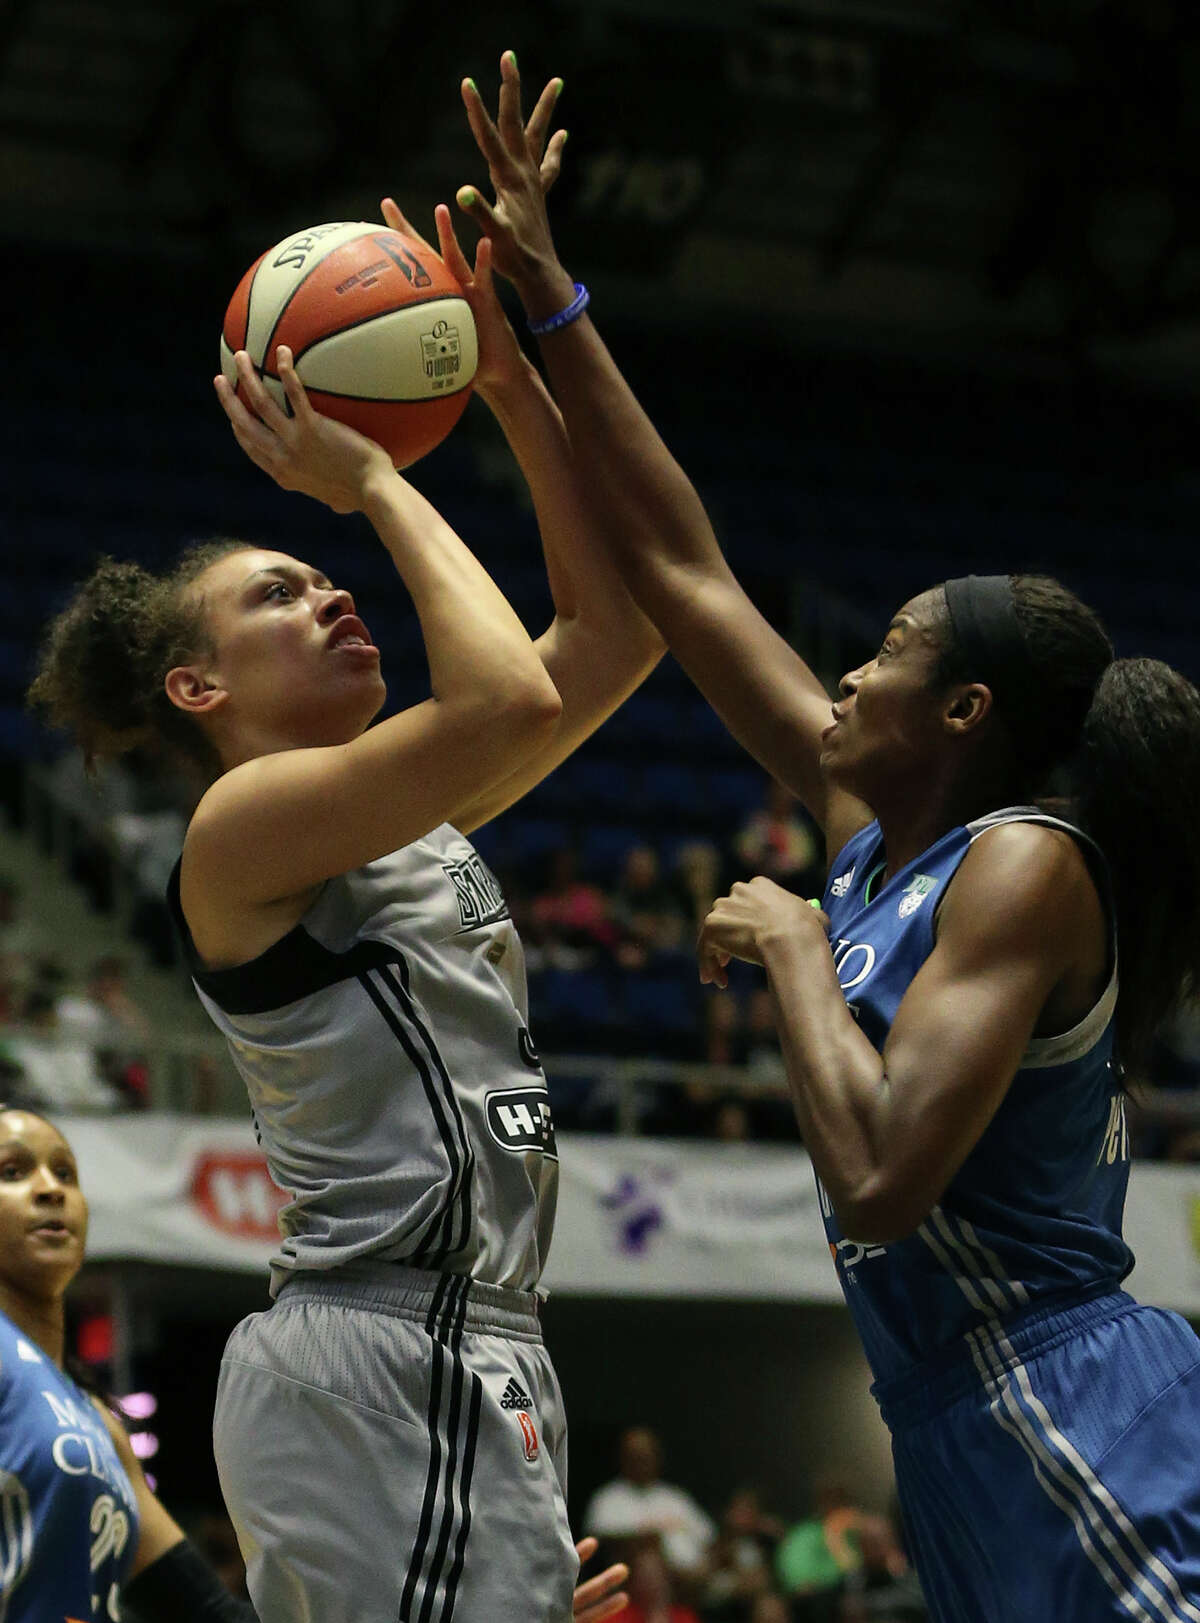 Dearica Hamby tries a shot against stiff defense put up by Devereaux Peters as the San Antonio Stars host the Minnesota Lynx at Freeman Coliseum on June 19, 2015.